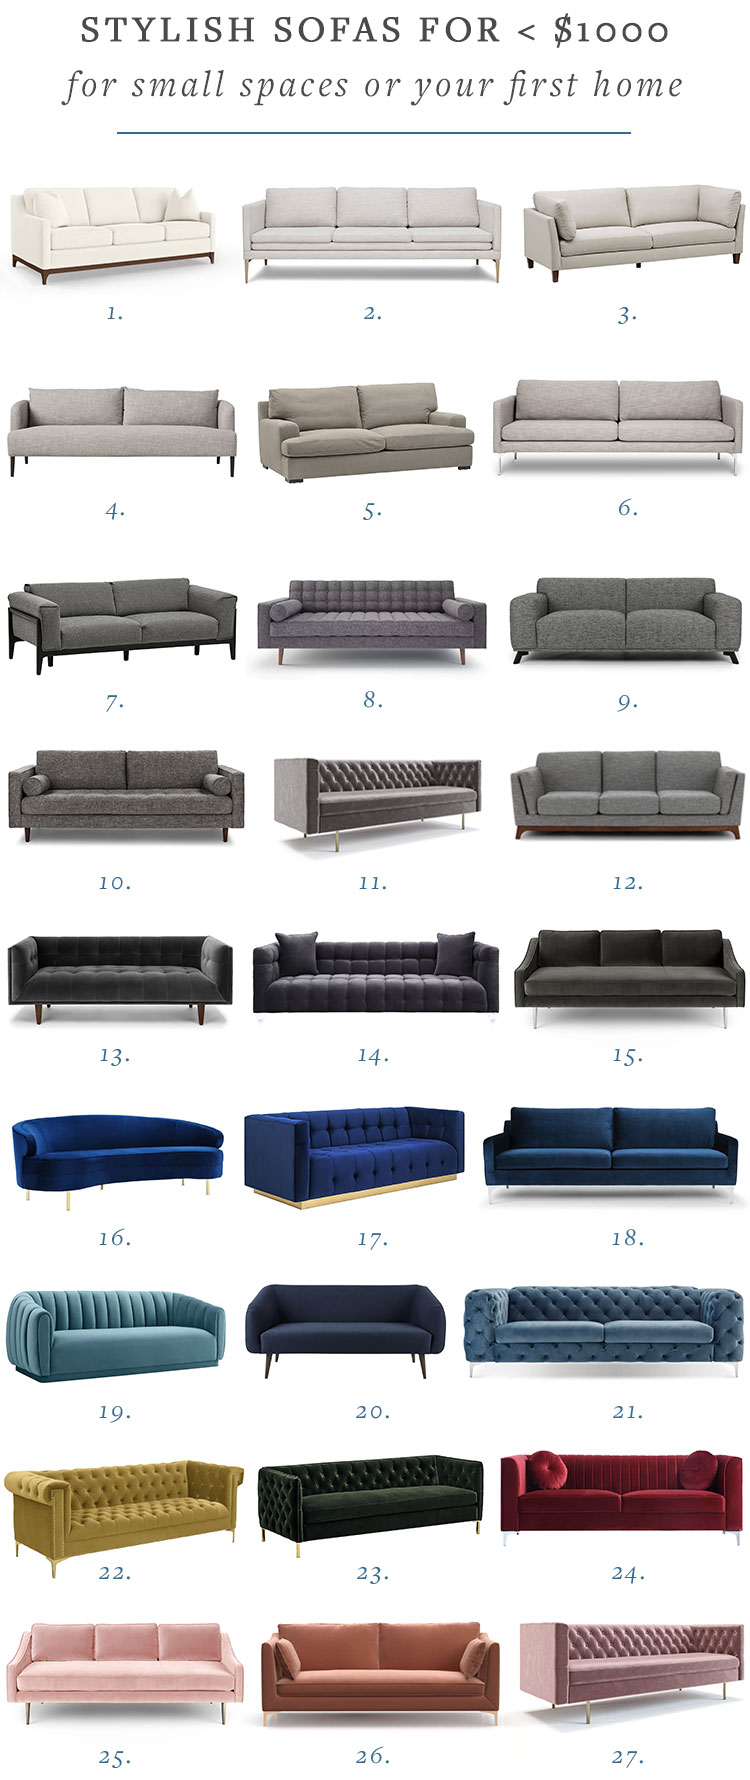 Stylish modern comfortable sofas for small spaces or your first home (under $1000). #smallspaces #shopping #homedecor #interiors #interiordesign #firsthome #couch #sofa #affordabledecor #under1000